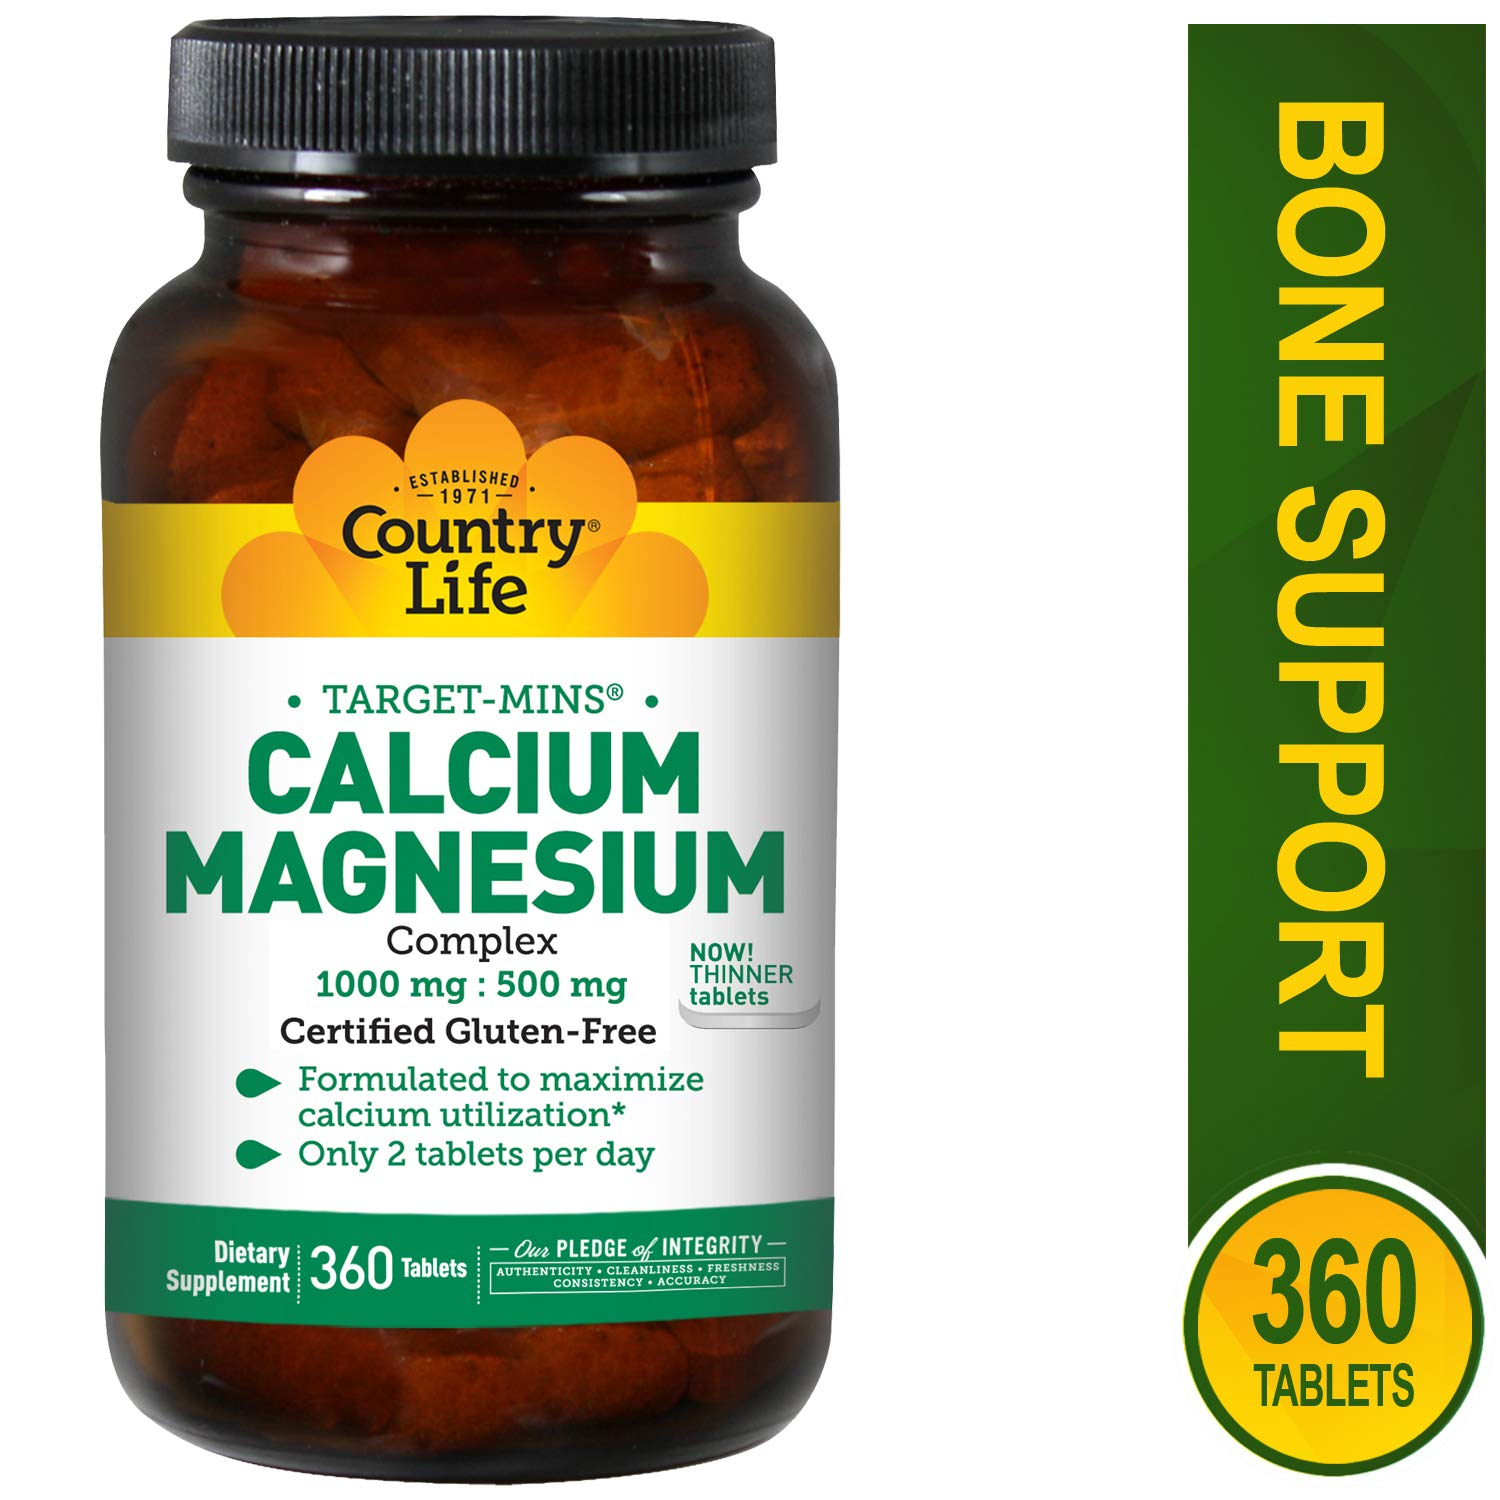 Country Life Target Mins Cal-mag Complex, 1,000 mg/500 mg Per 2 Tablets, 360-Count